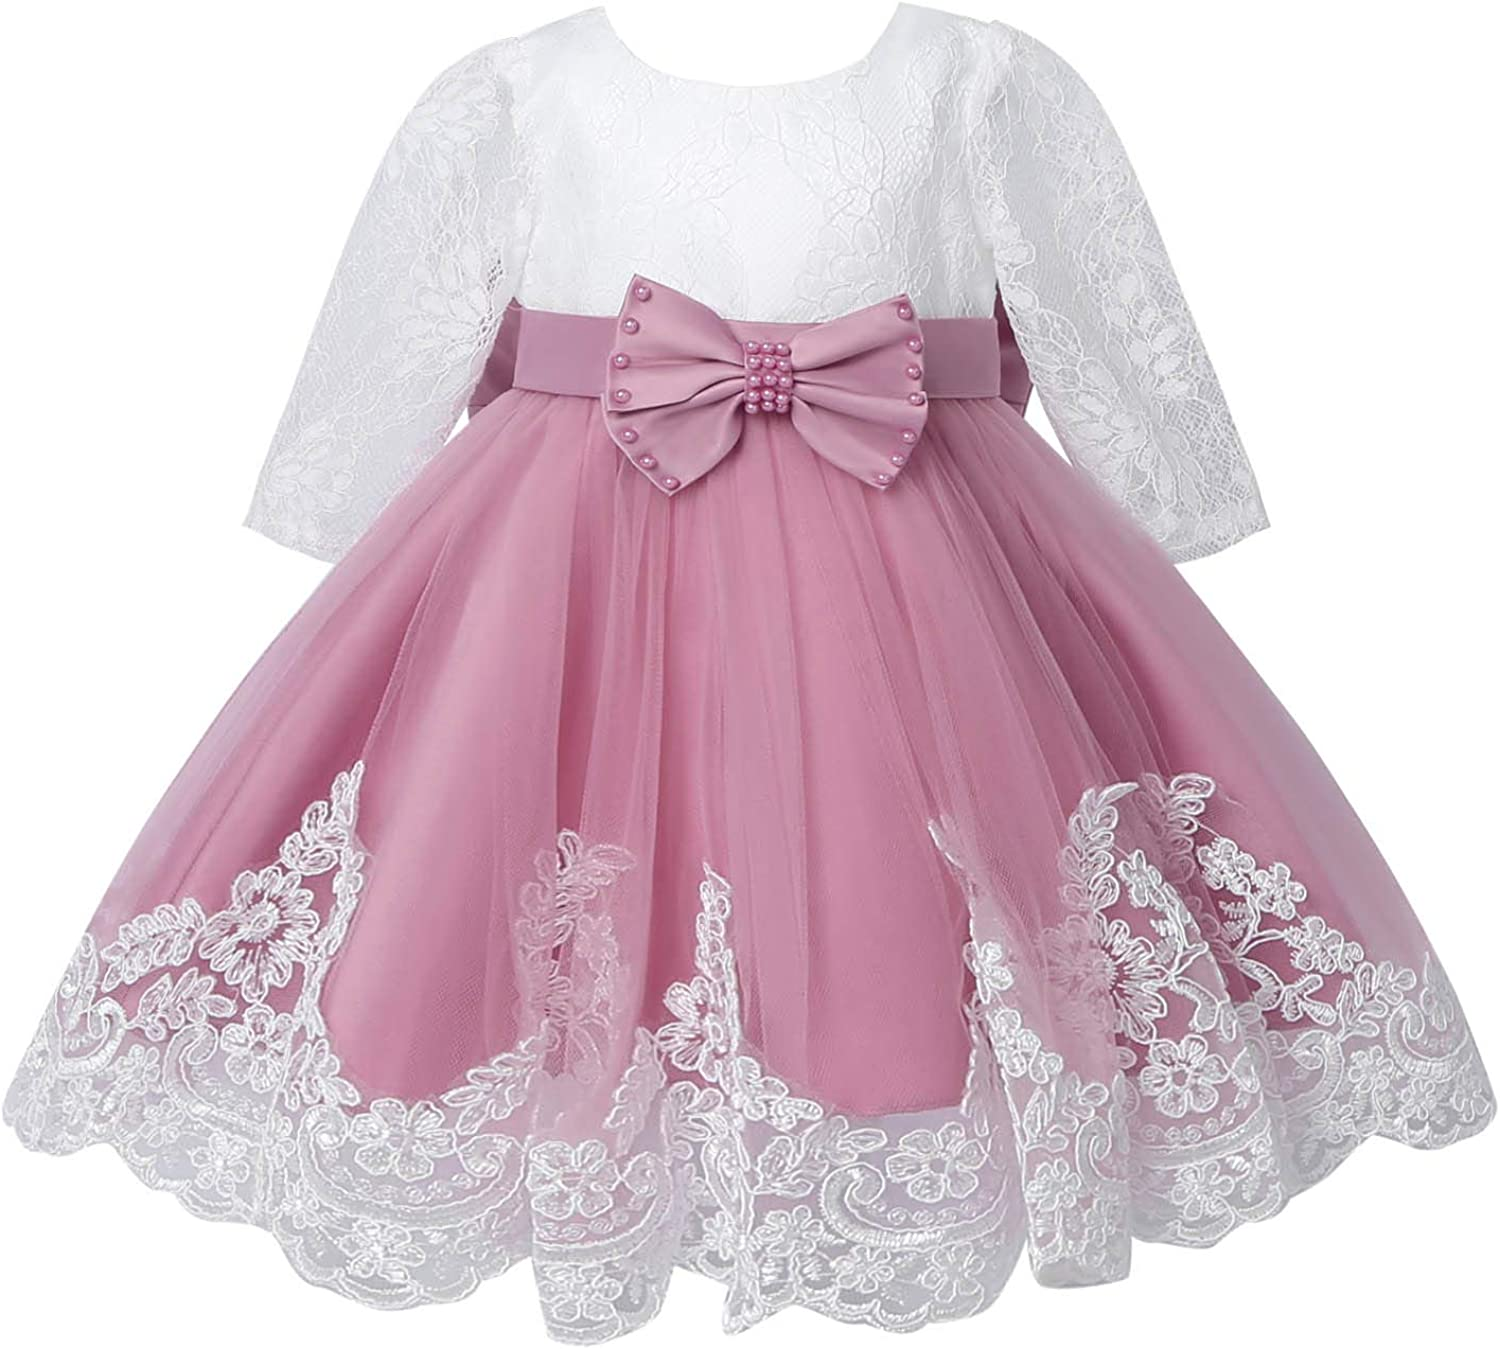 YiZYiF Princess Flower 2021 model Dress Lace Don't miss the campaign Birthday Wedding Long Sleeve P